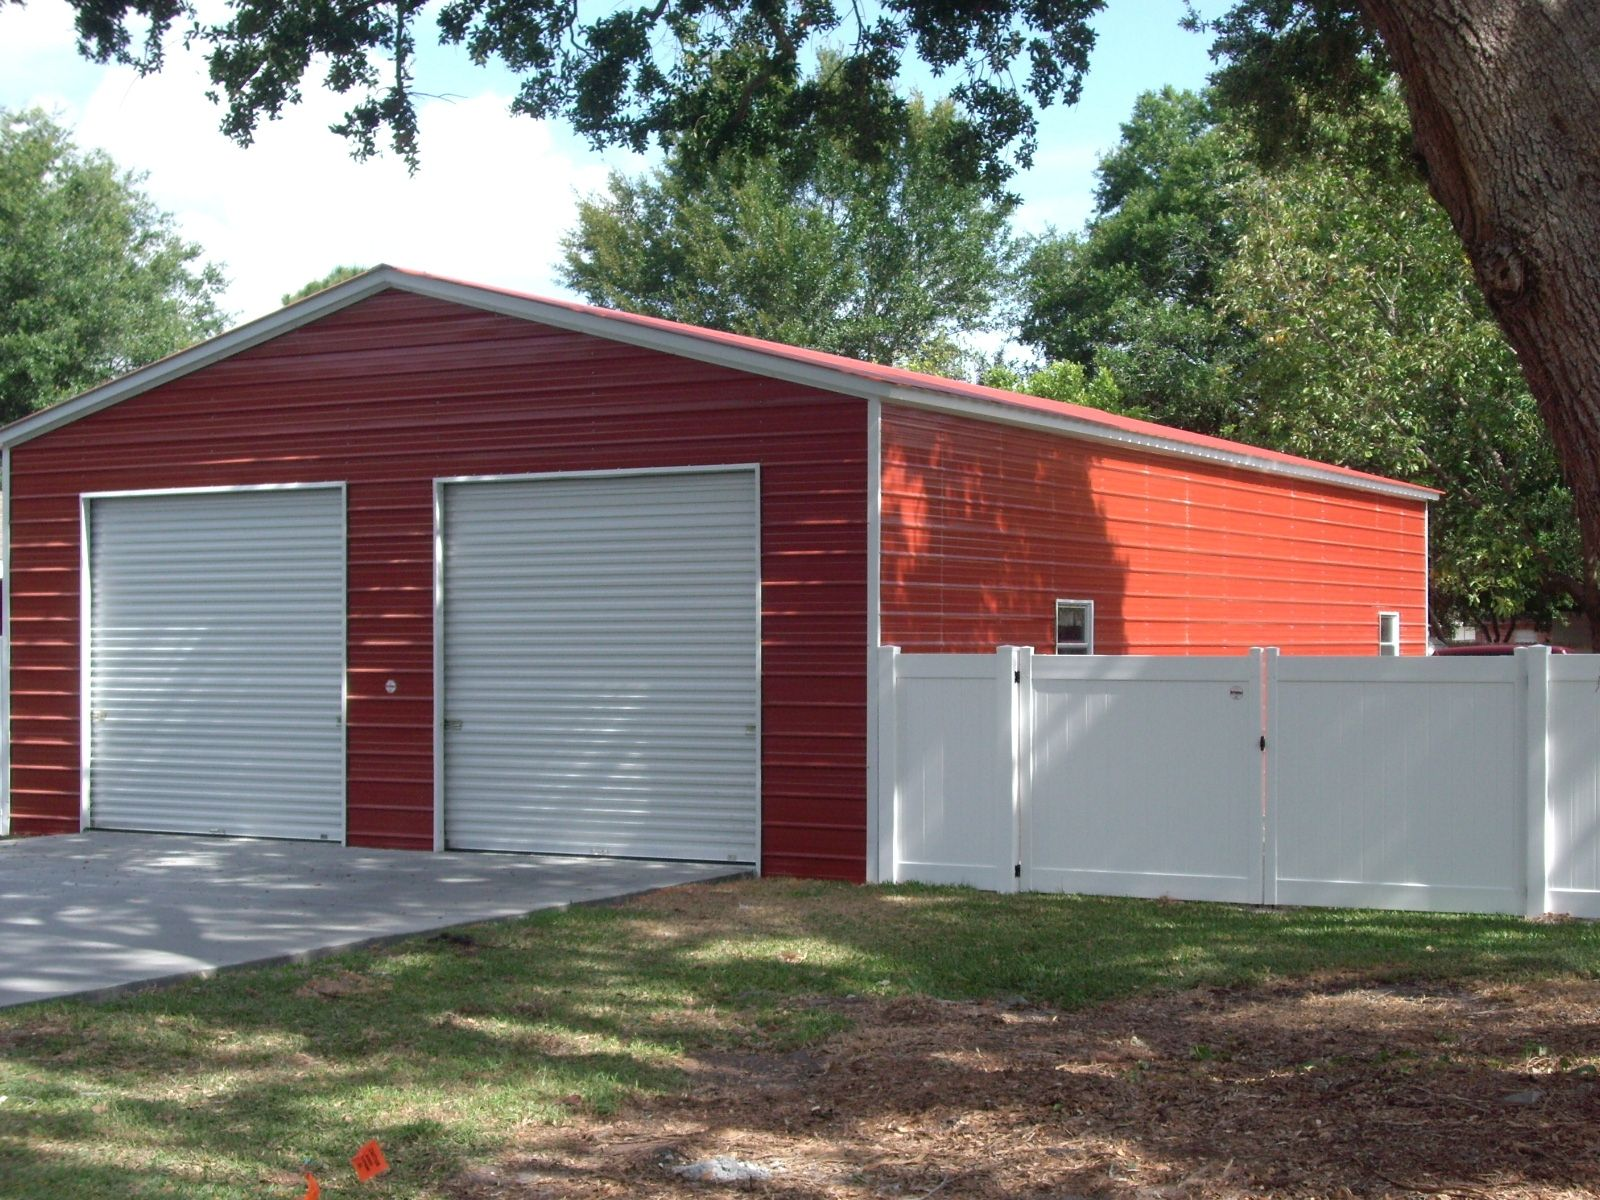 12x16 Gable Storage Shed Plans With Roll Up Shed Door Shed Doors Building A Shed Storage Shed Plans